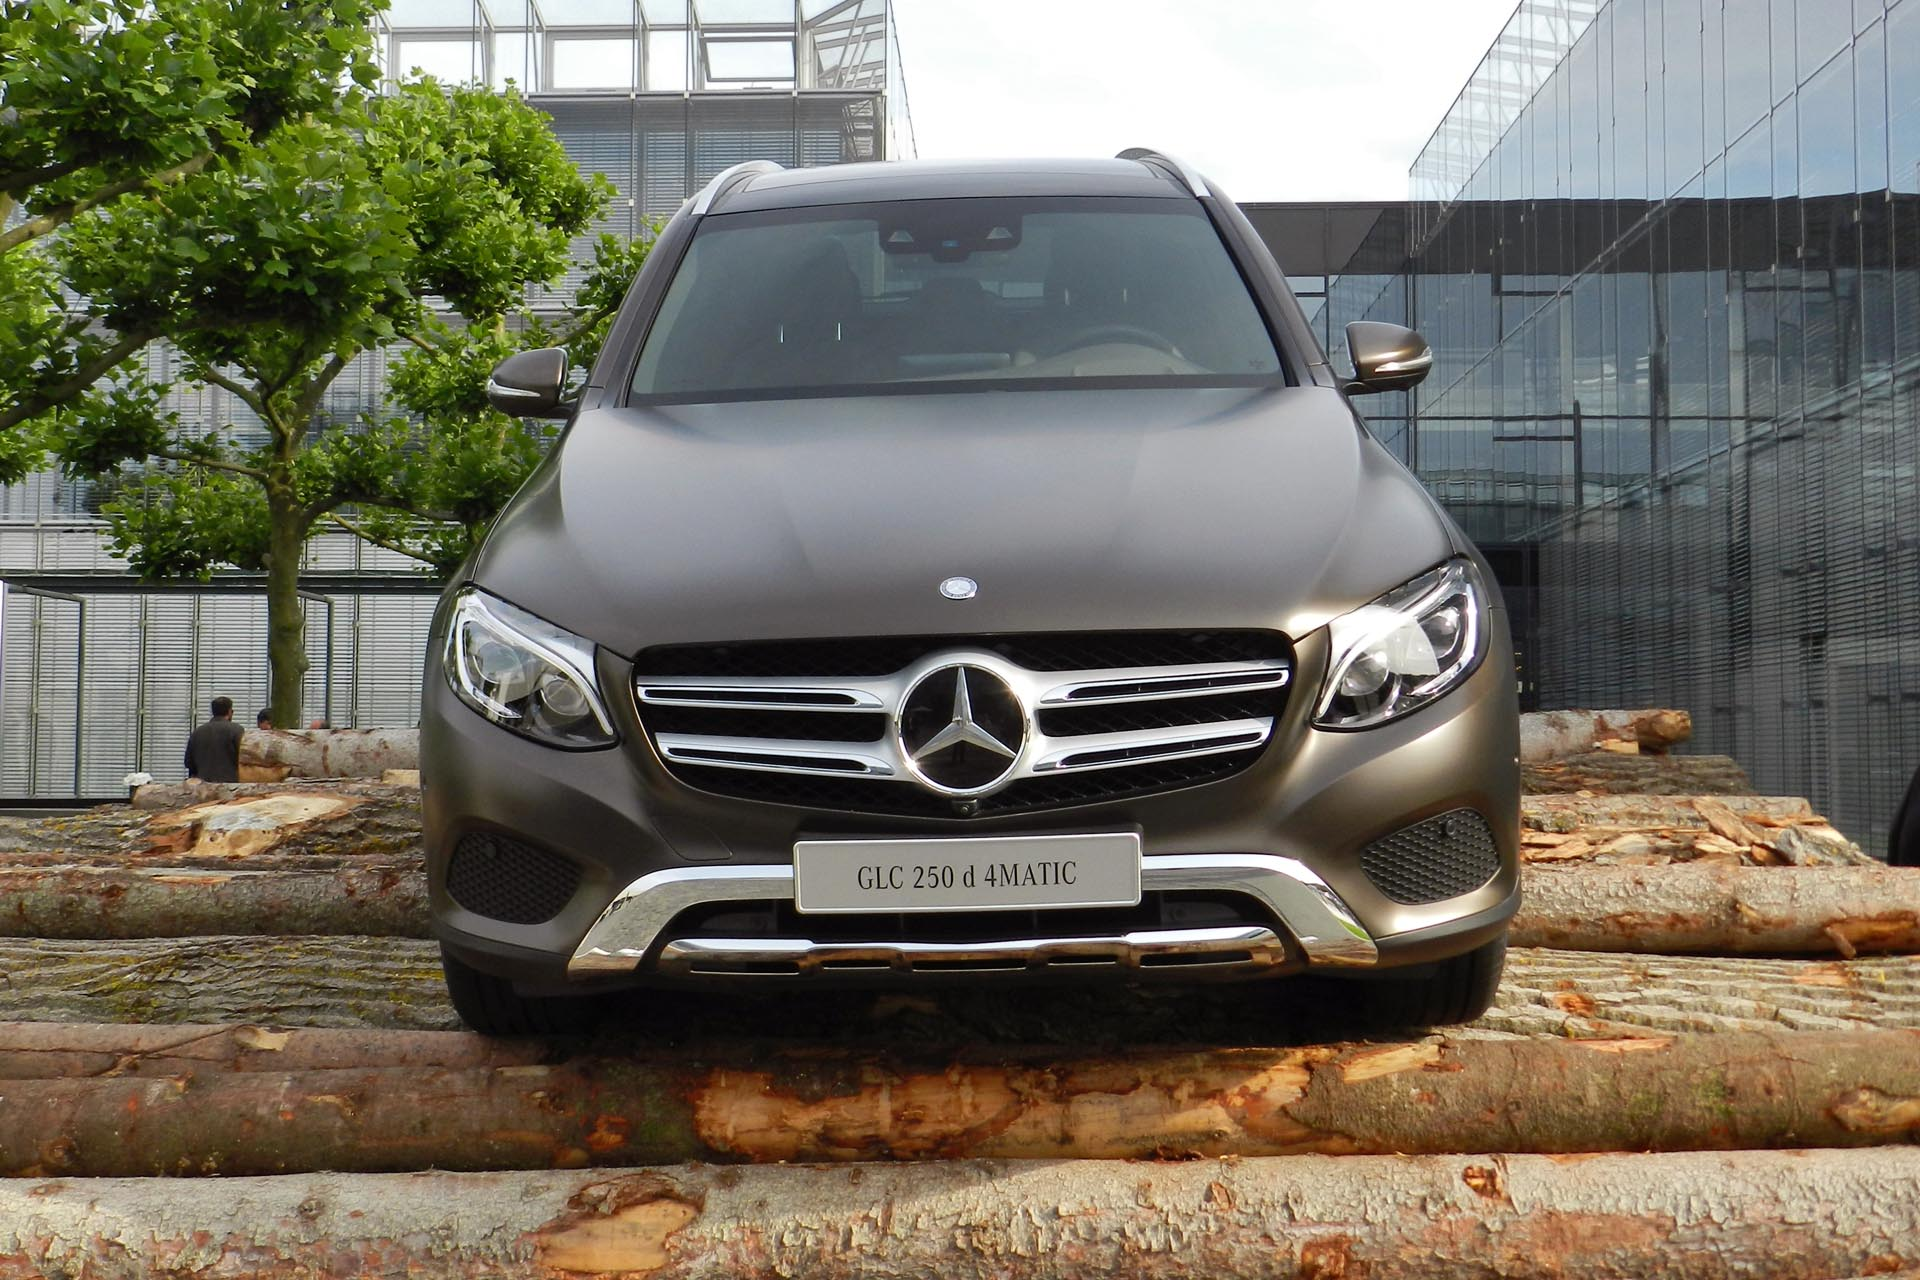 2016 mercedes benz glc 250d 4matic. Black Bedroom Furniture Sets. Home Design Ideas